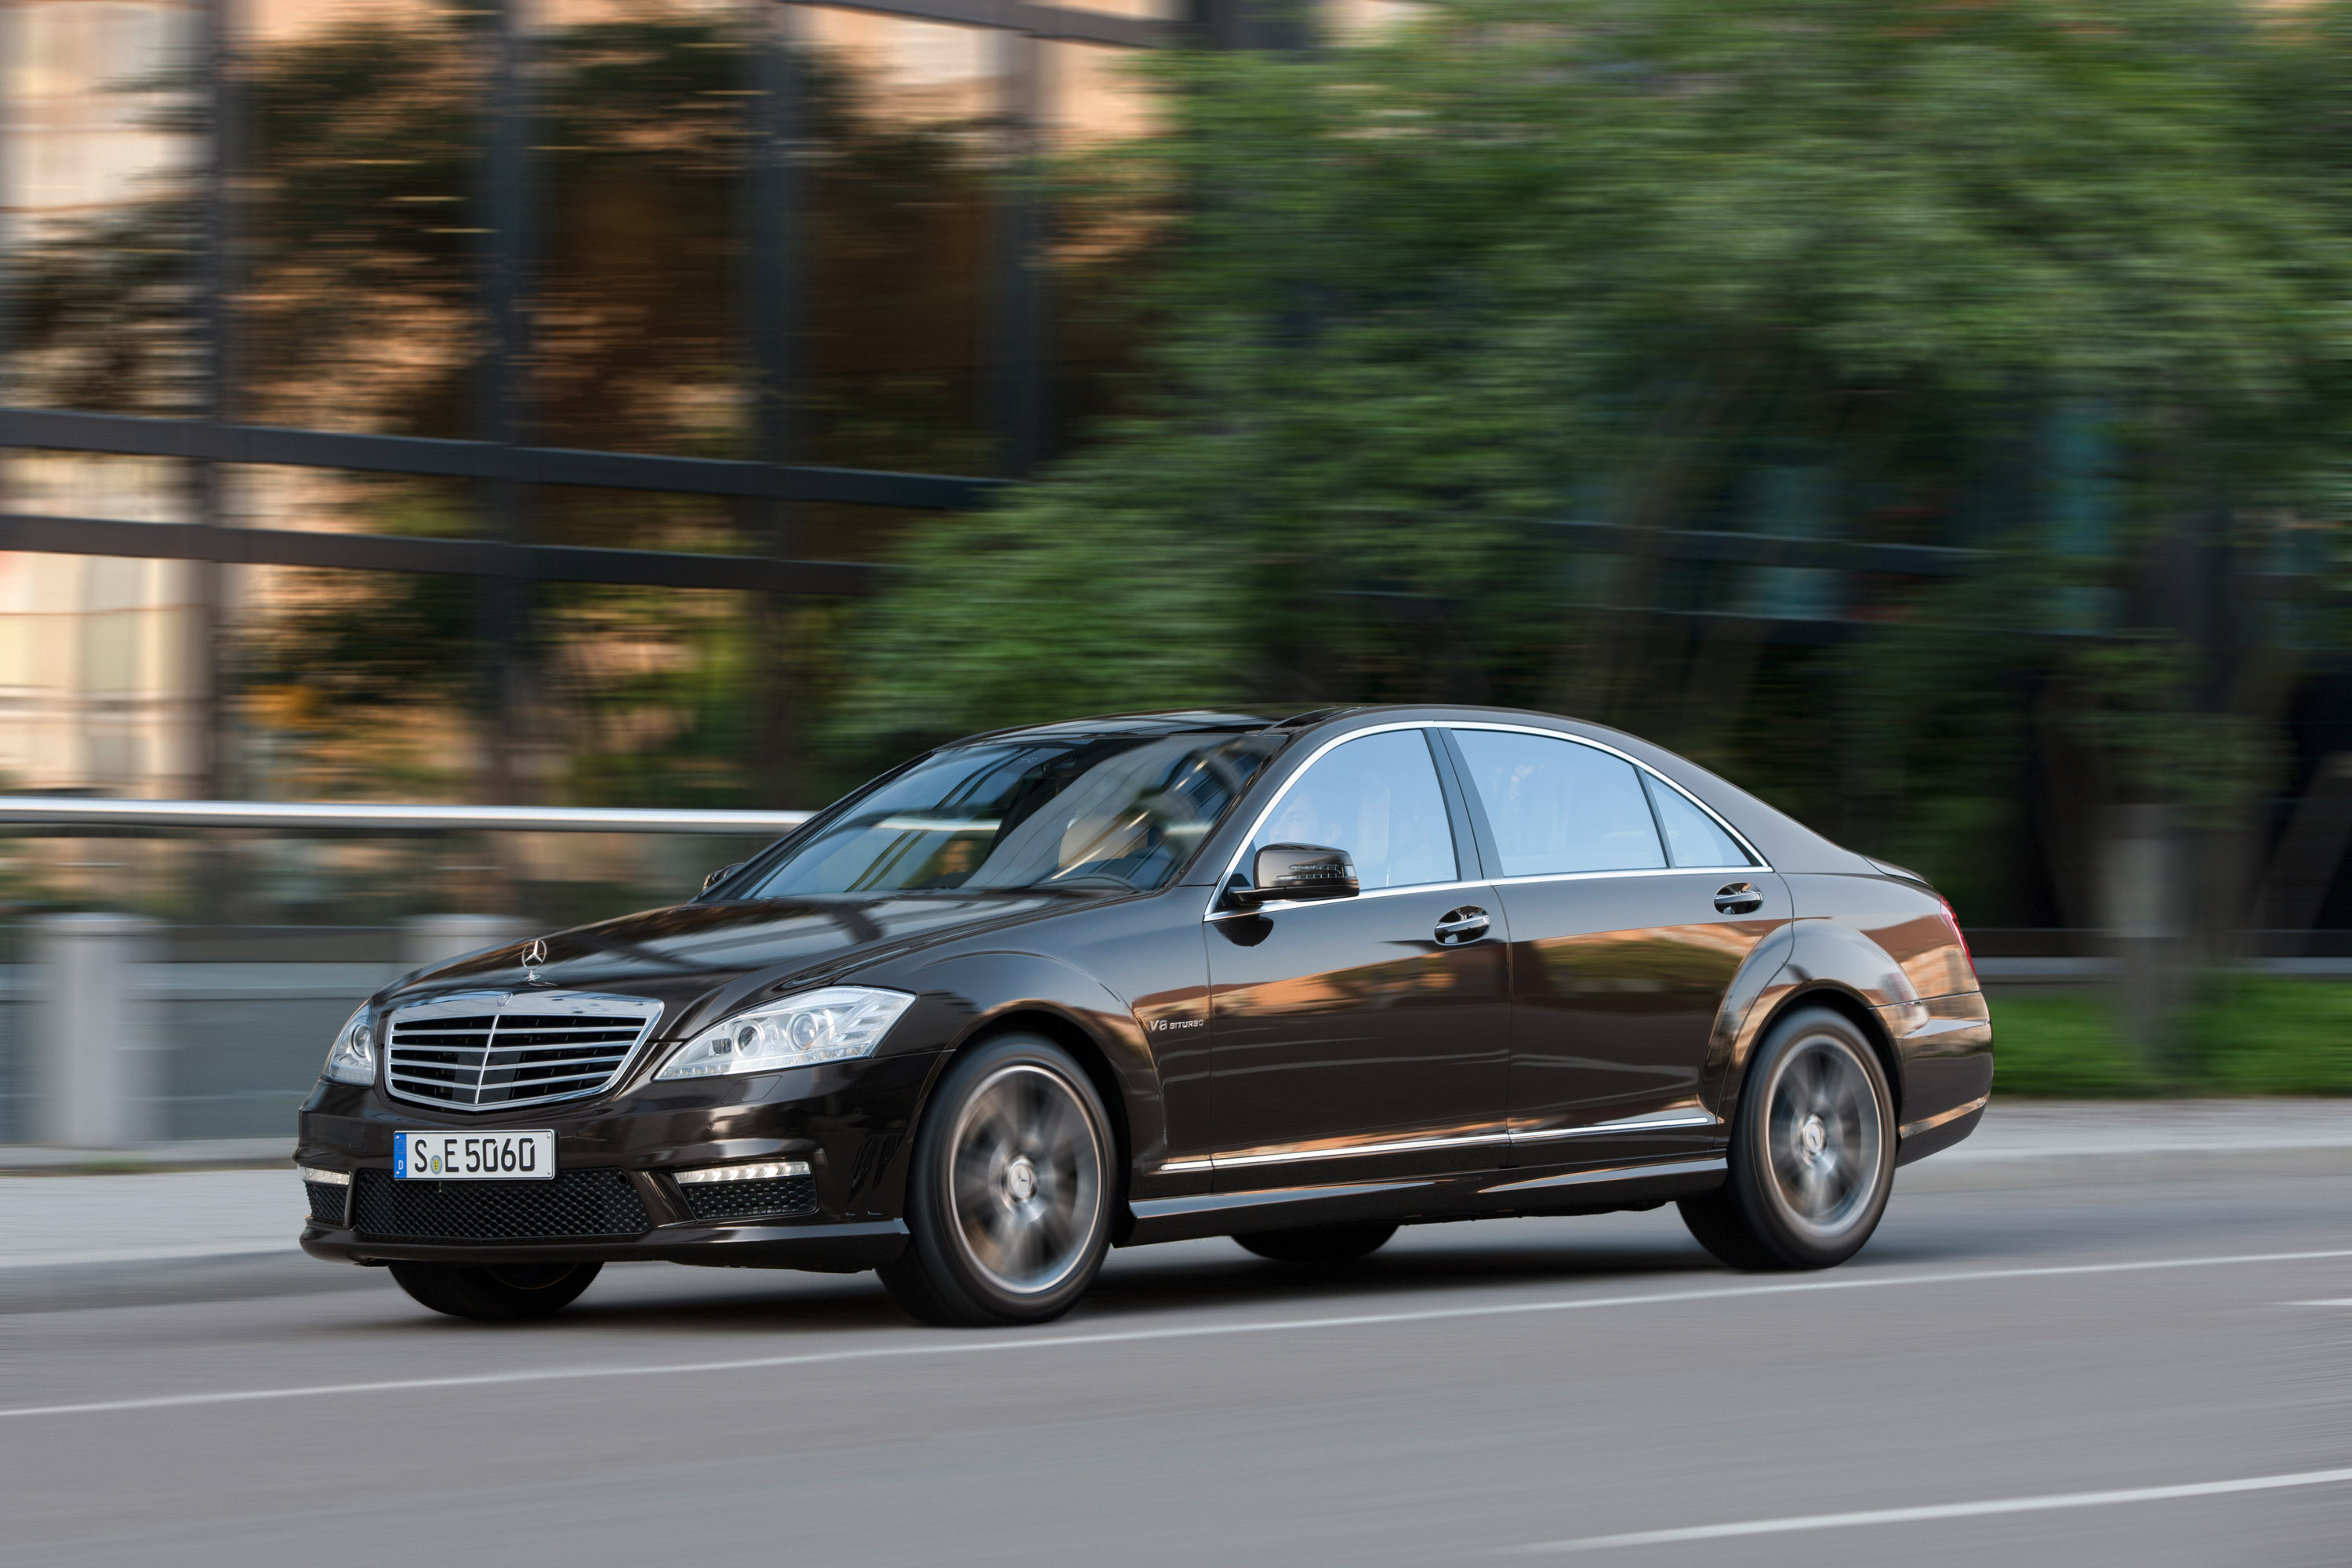 Mercedes-Benz S63 AMG - The ultimate high-performance седан - фотография №14